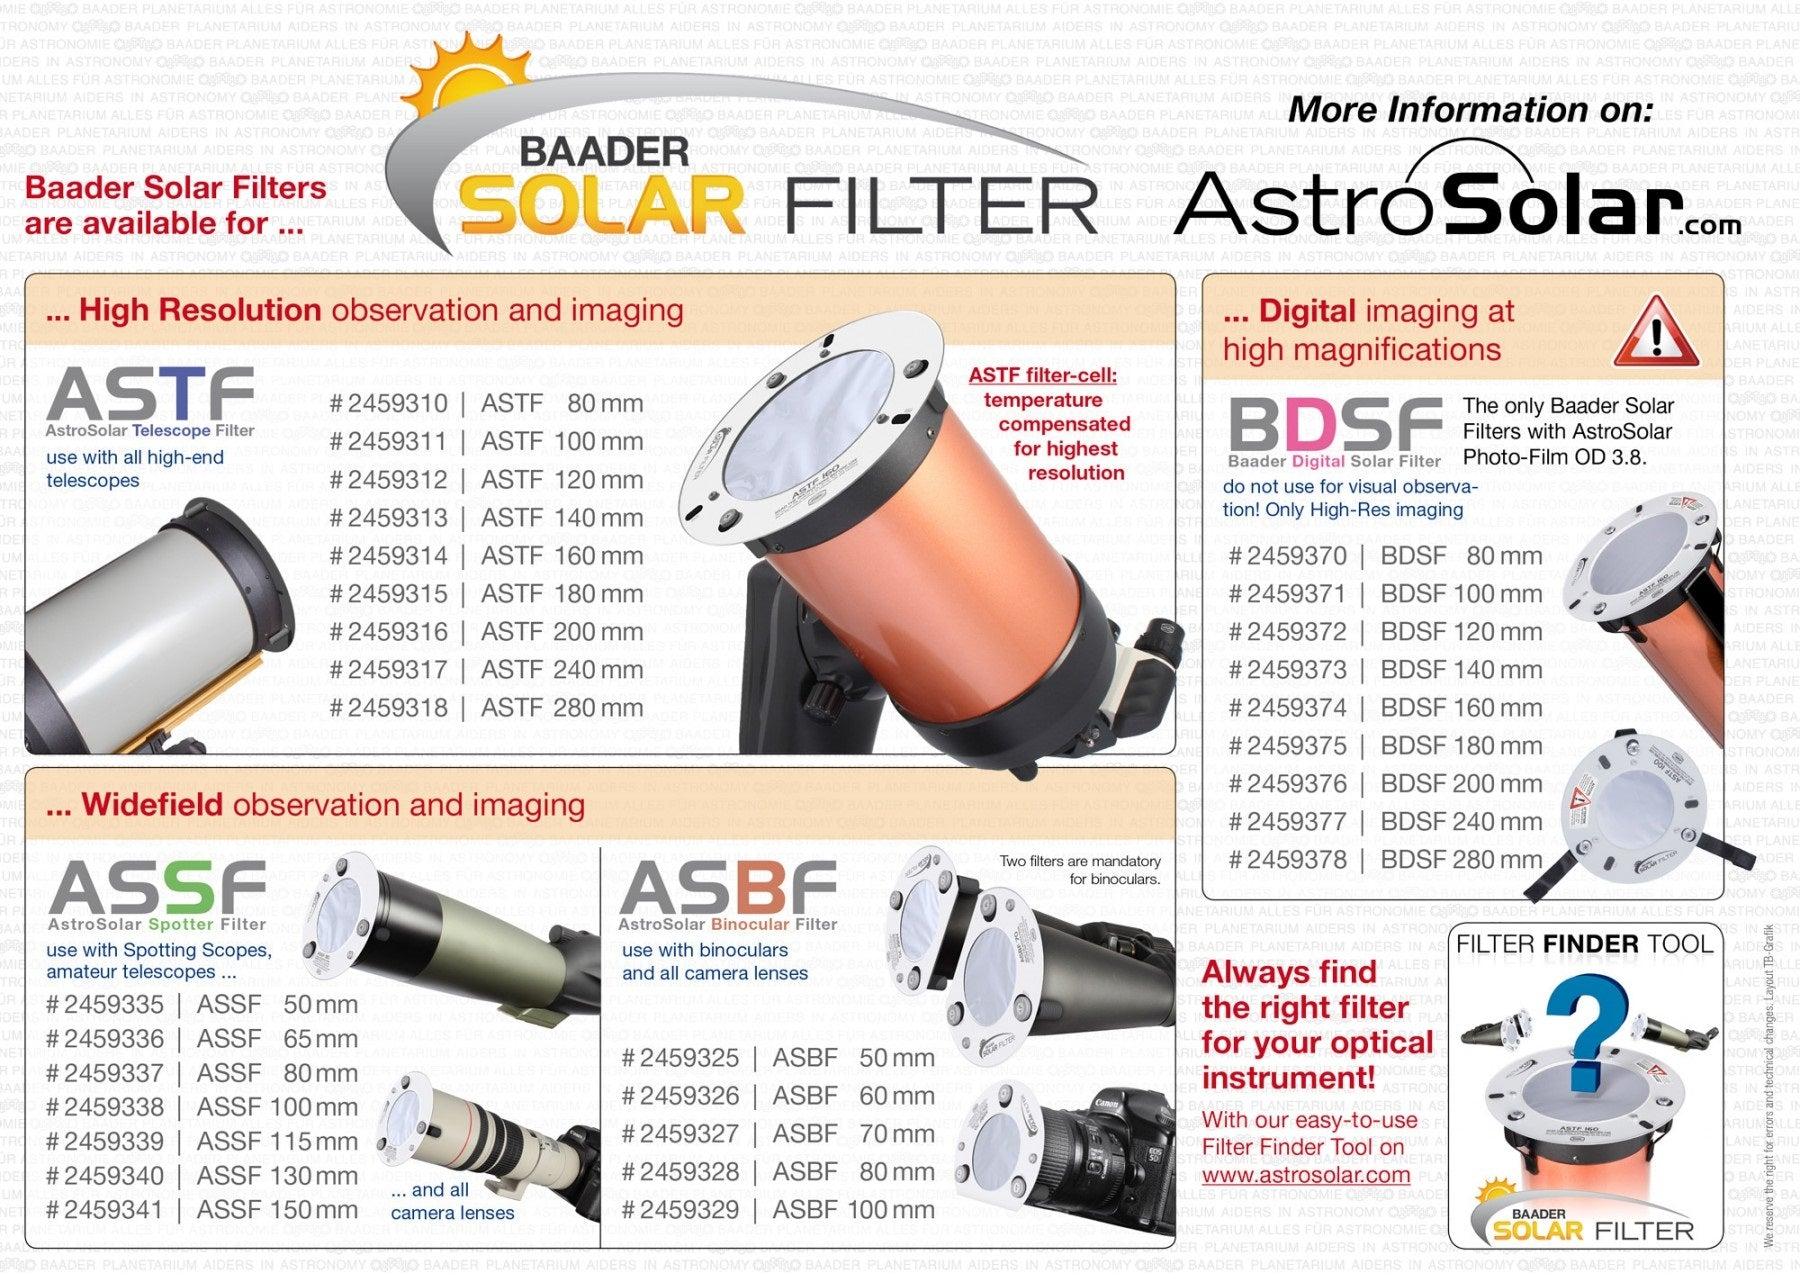 Baader ASTF: AstroSolar Telescope Filter OD 5.0 (80mm - 280mm)